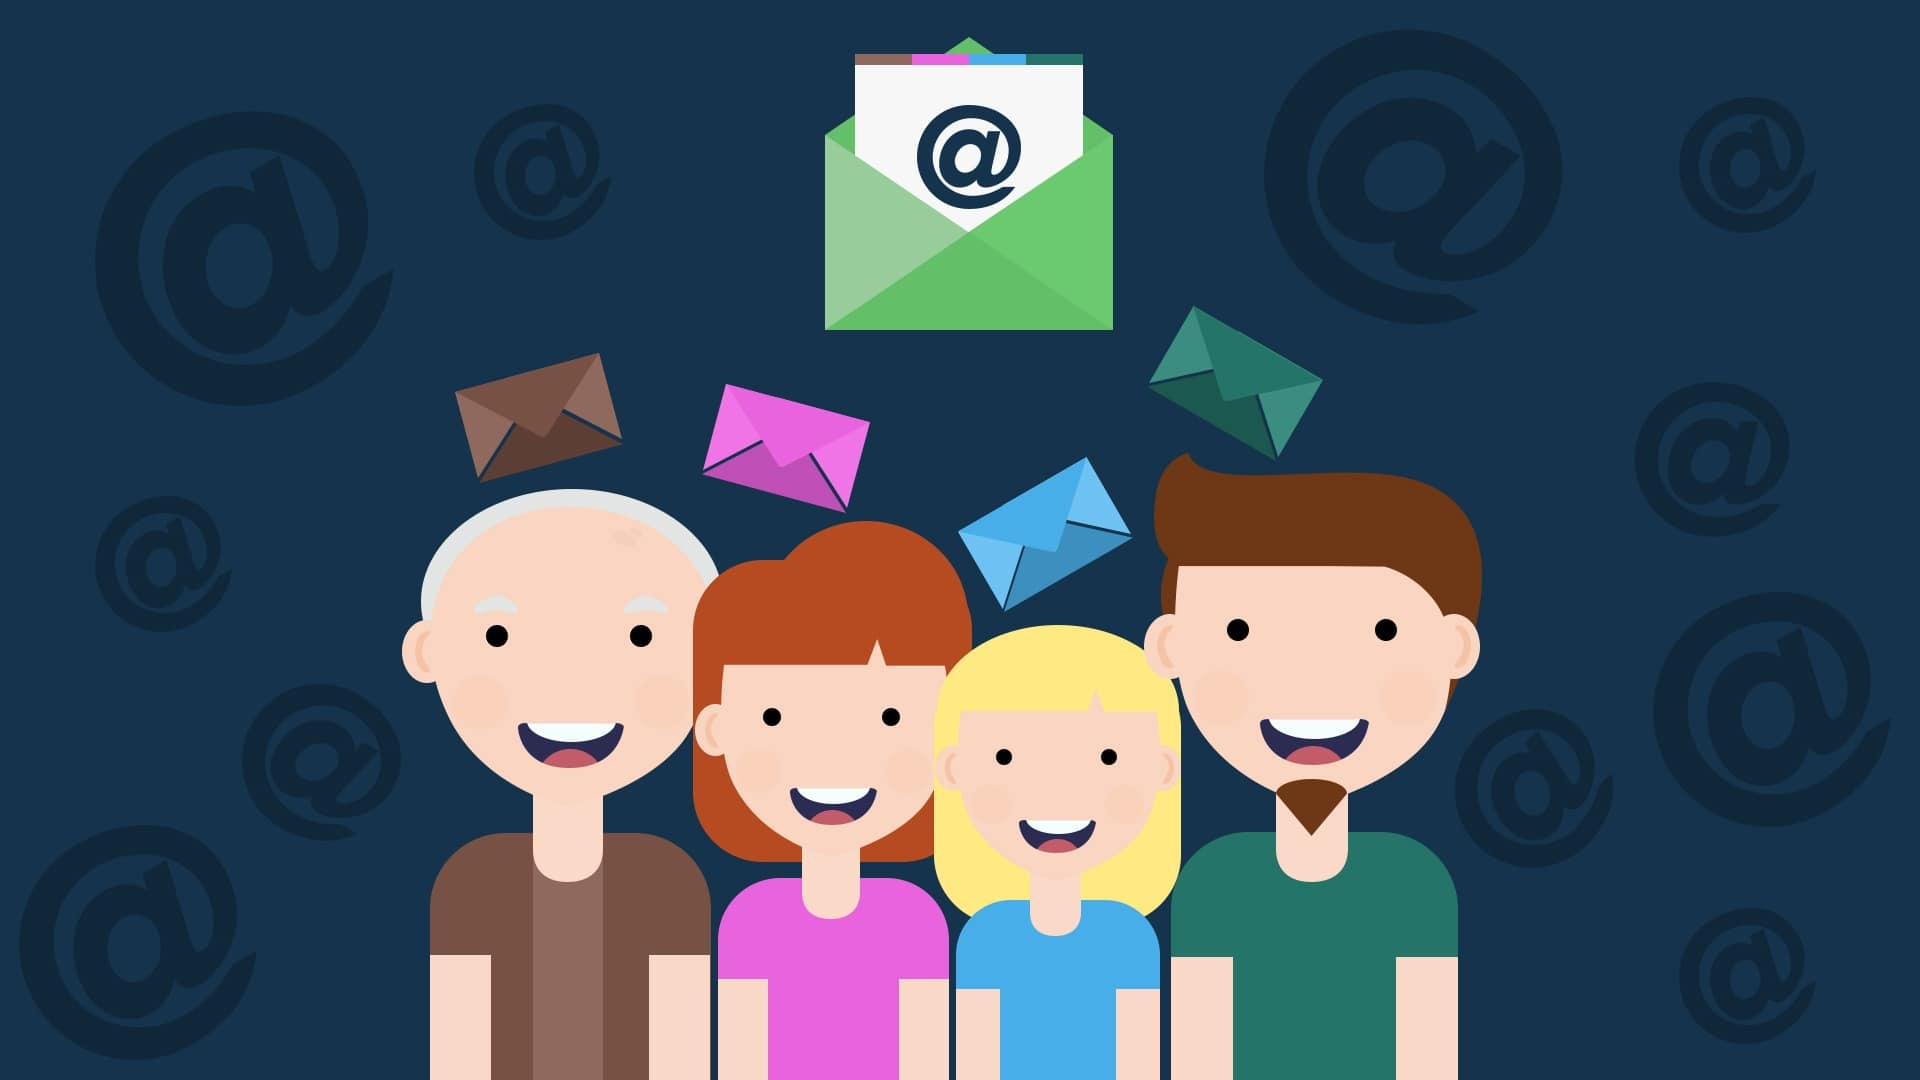 Email Marketing and Social Media to take your business to the next level.